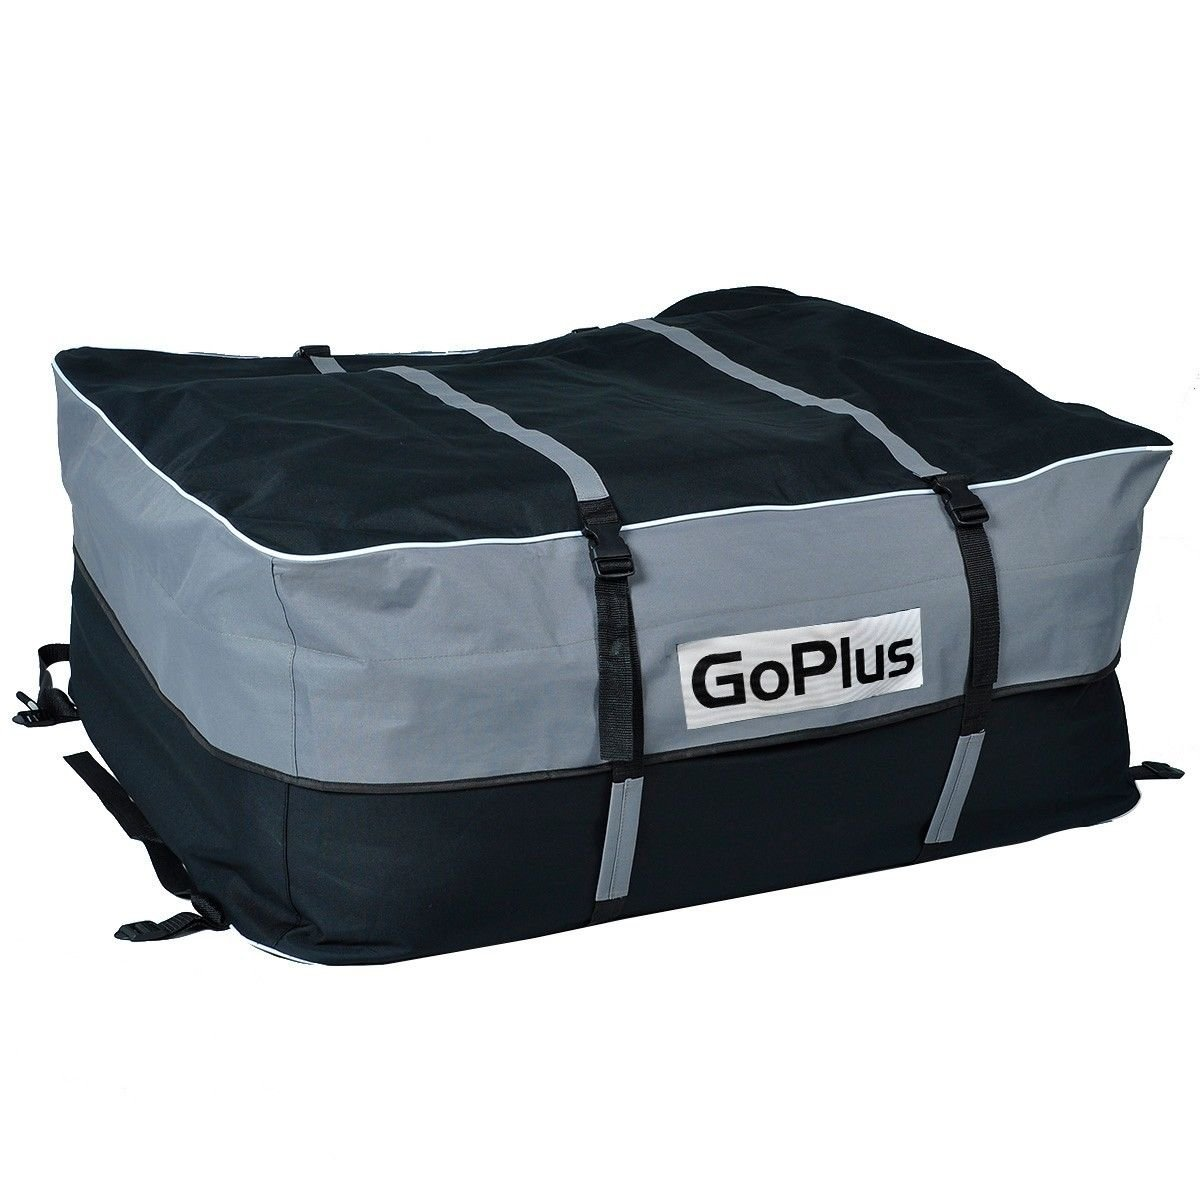 Goplus Car Van Suv Roof Top Waterproof Luggage Travel Cargo Rack Storage Bag Carrier by Goplus